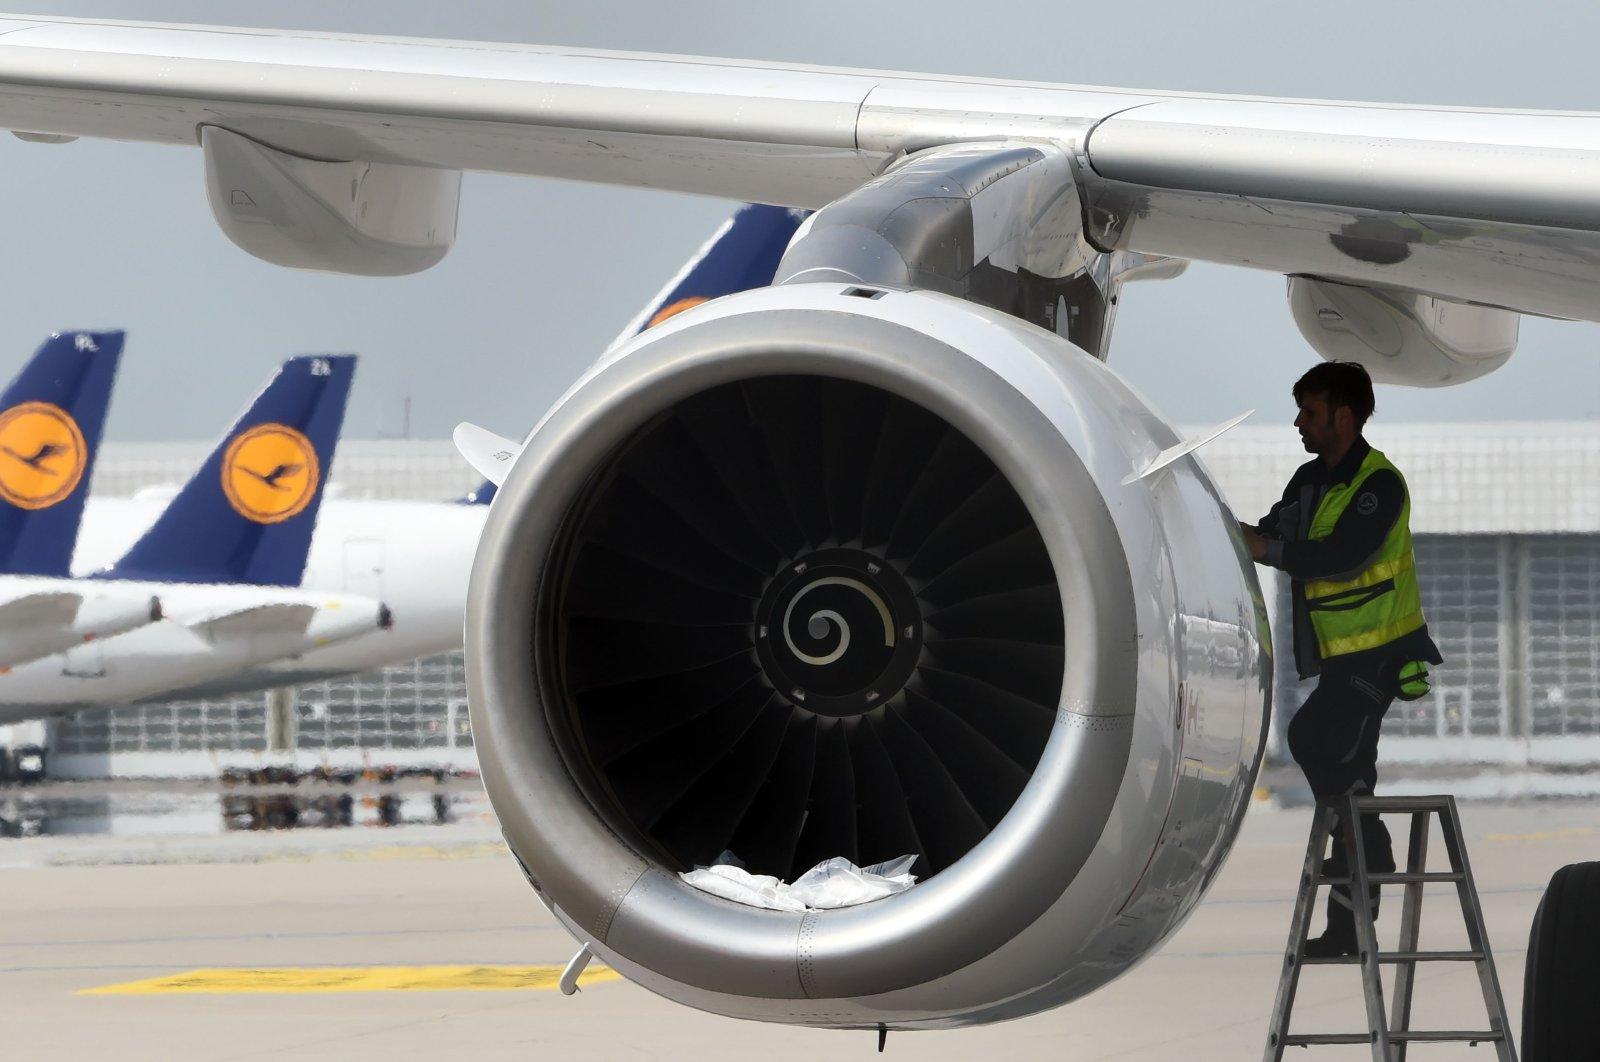 A technician of the German airline Lufthansa works on a parked plane at Munich International Airport, Munich, southern Germany, April 28, 2020. (AFP Photo)